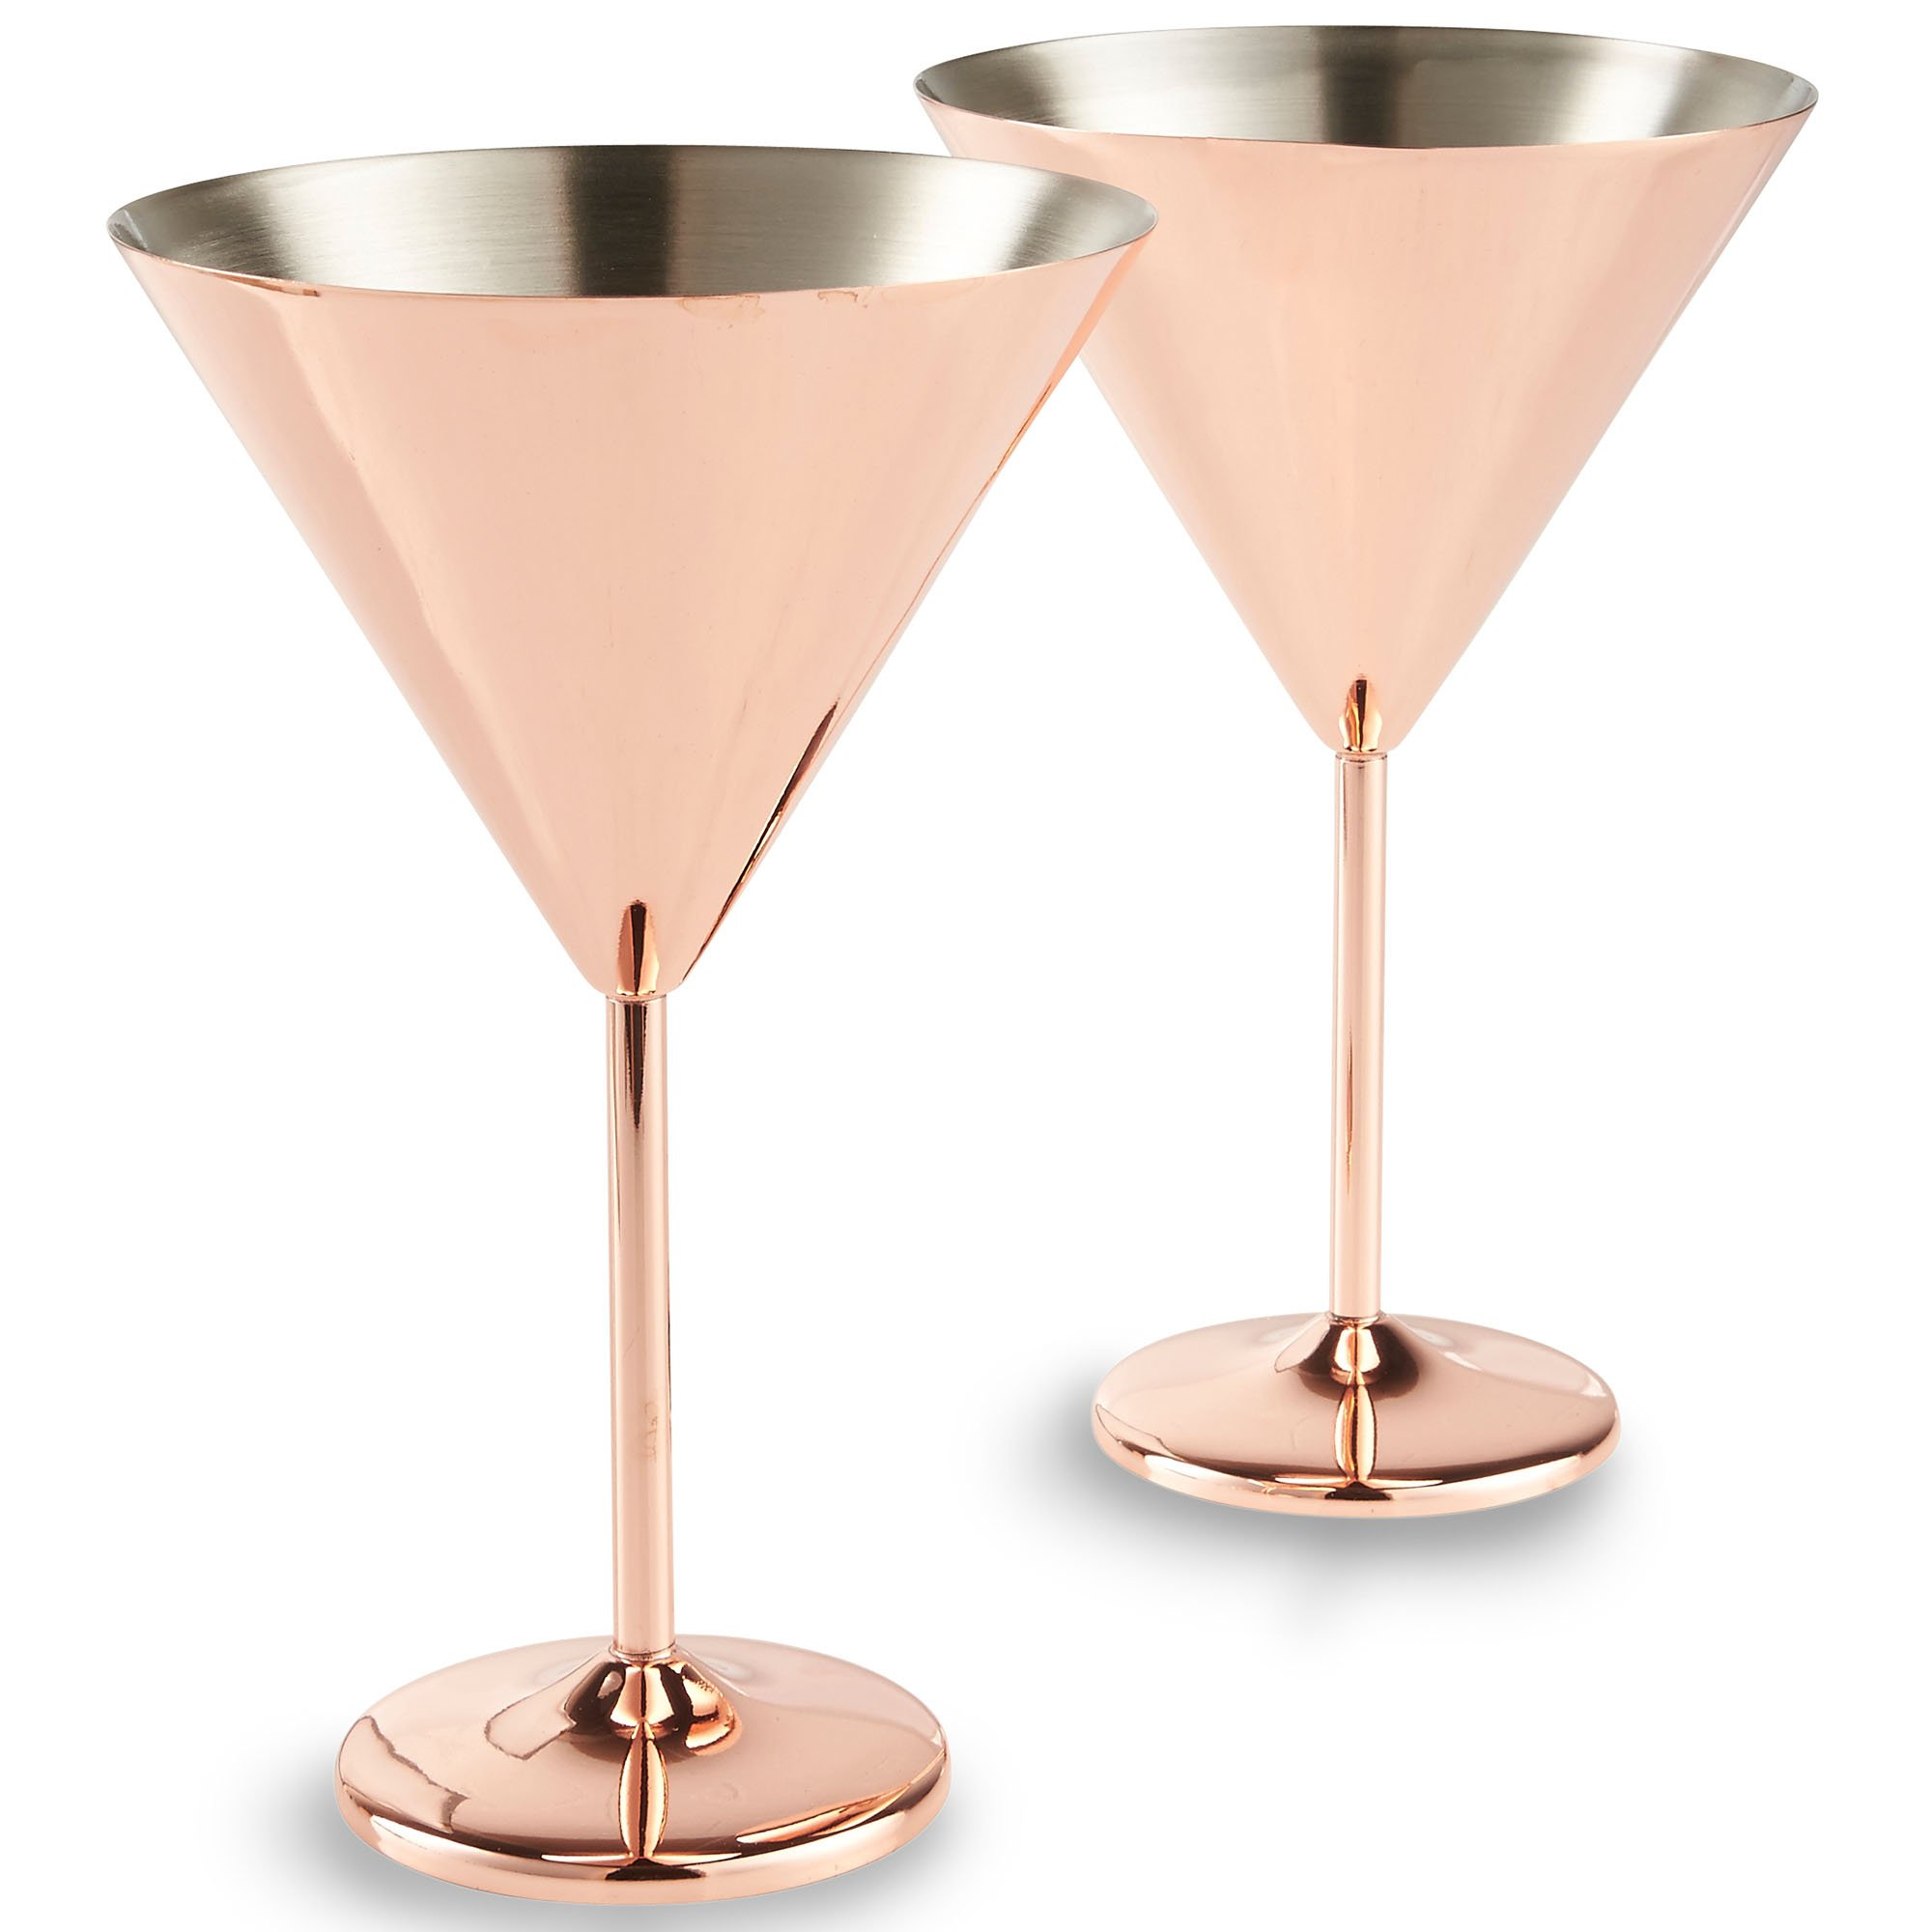 VonShef 16oz Copper Martini Cocktail Glasses, Stainless Steel, Set of 2 16oz Glasses with Gift Box